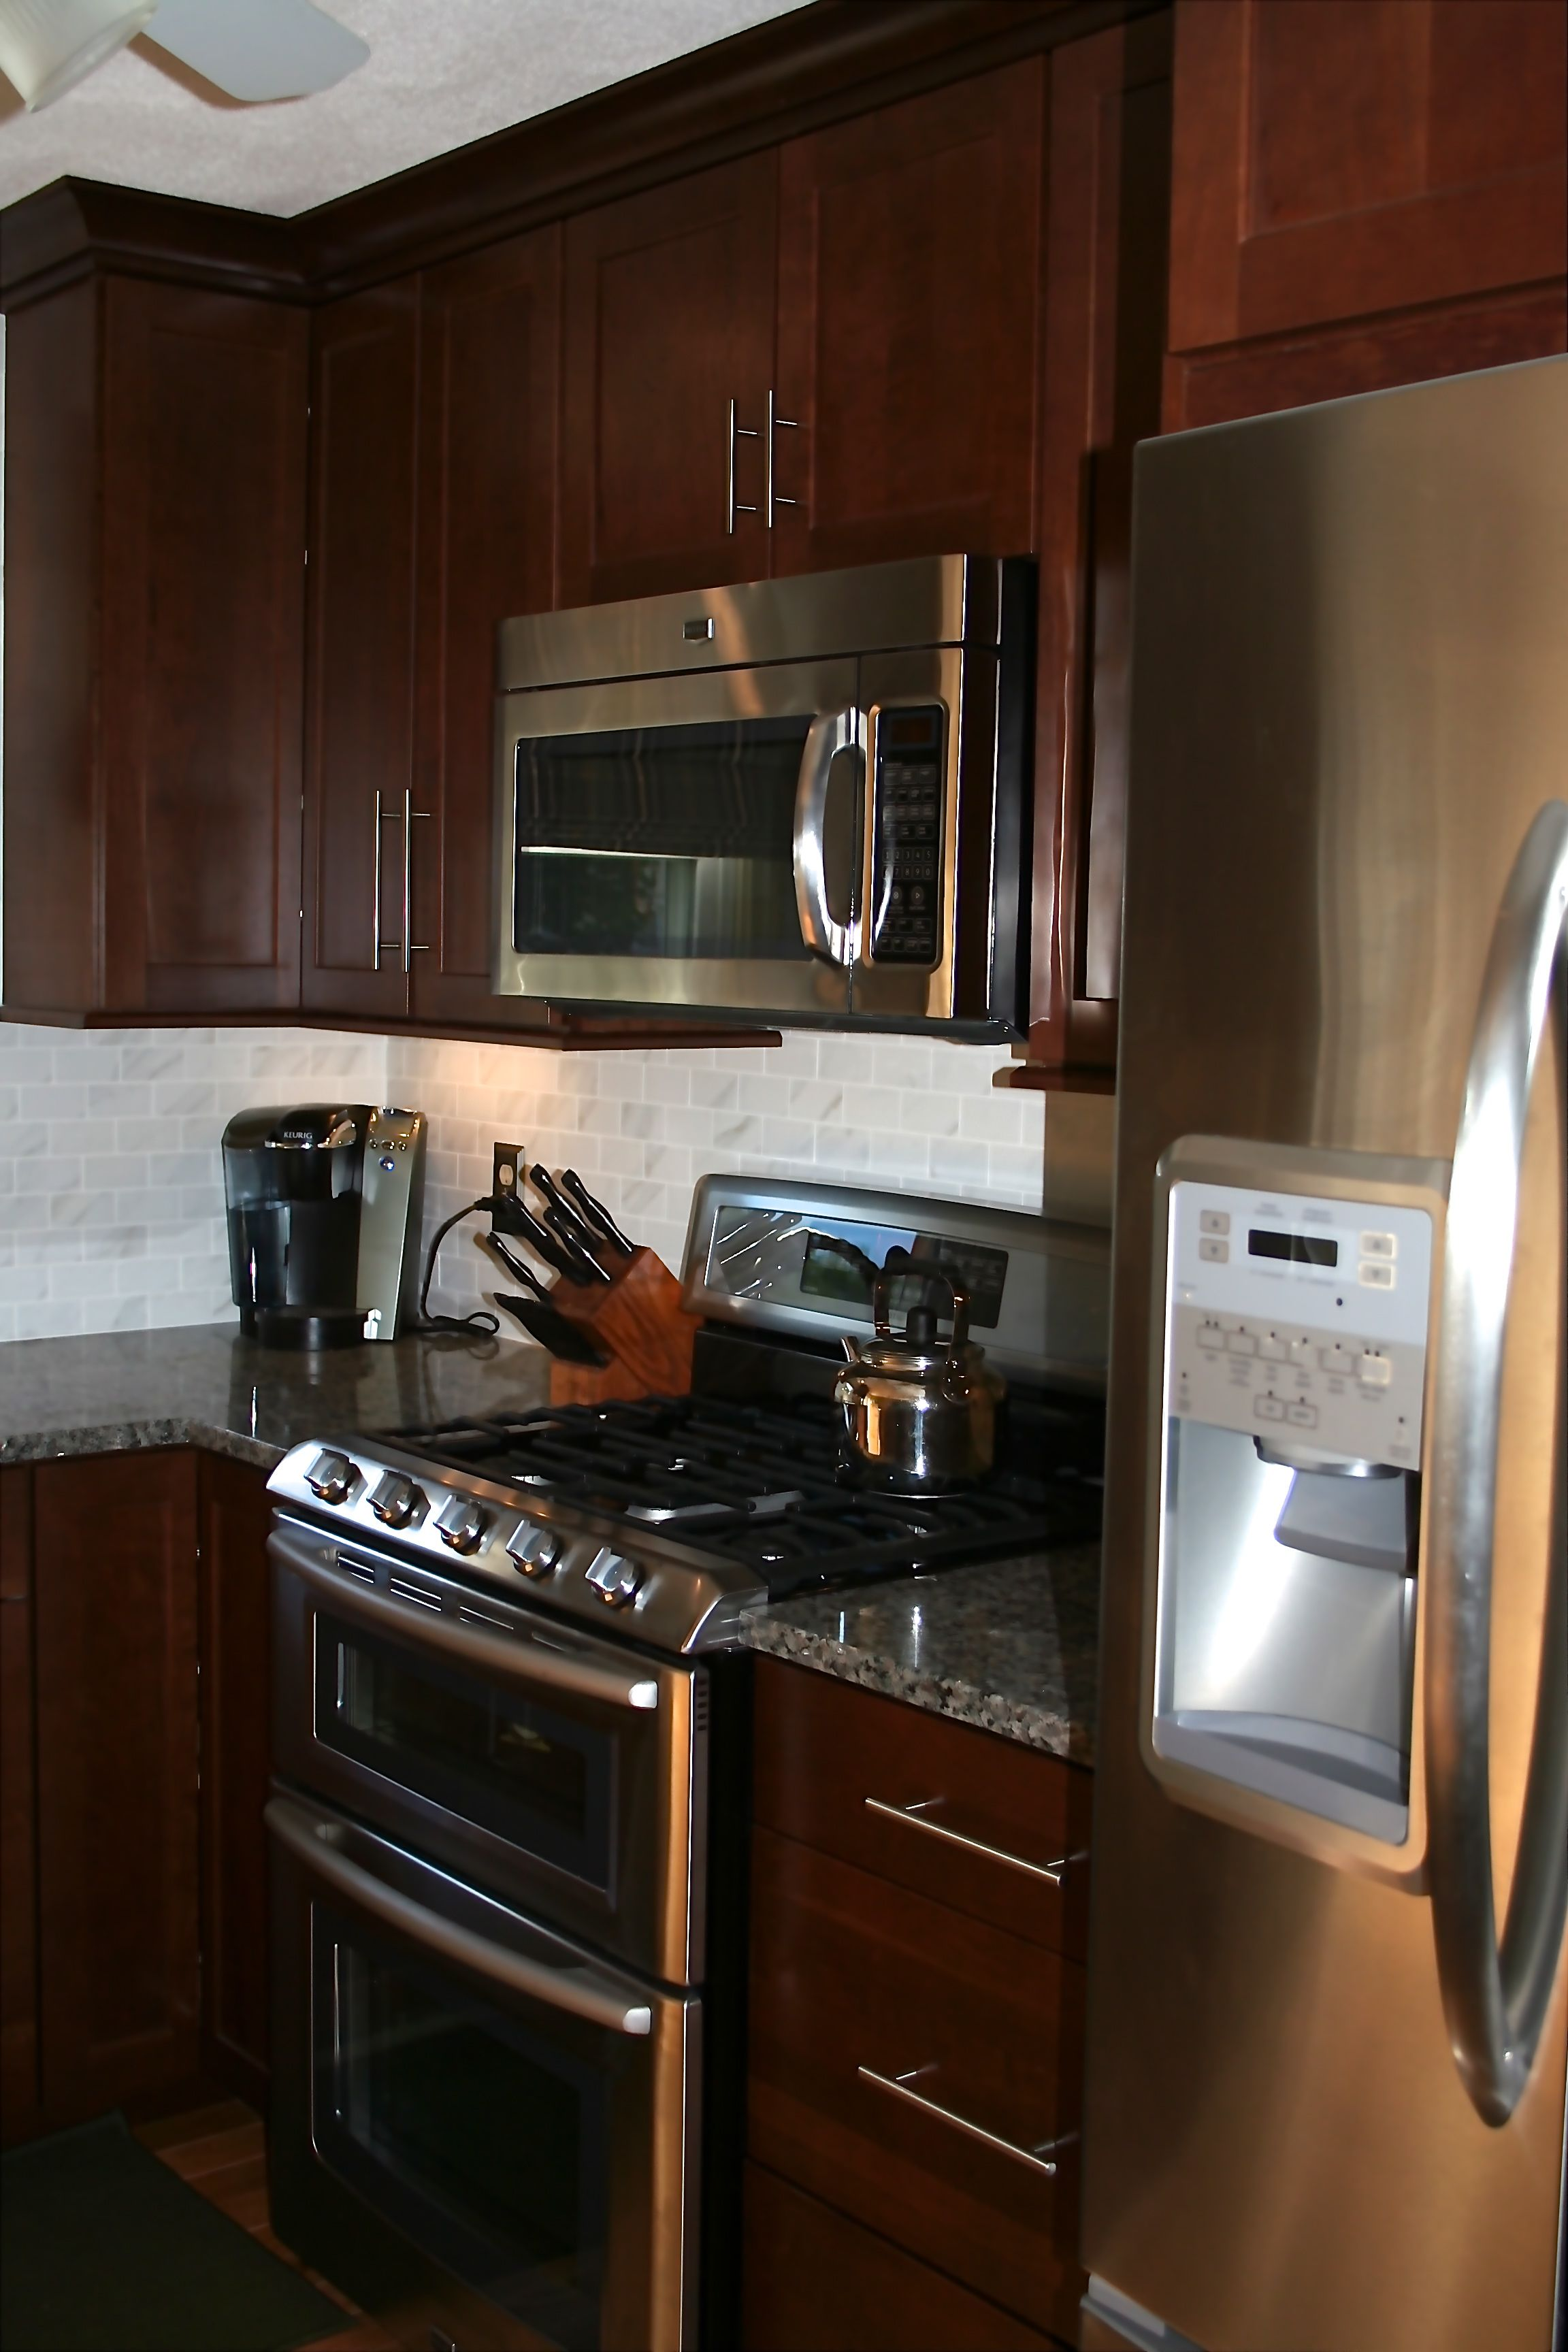 waypoint kitchen cabinets outdoor islands cabinetry in cherry spice cove molding stainless